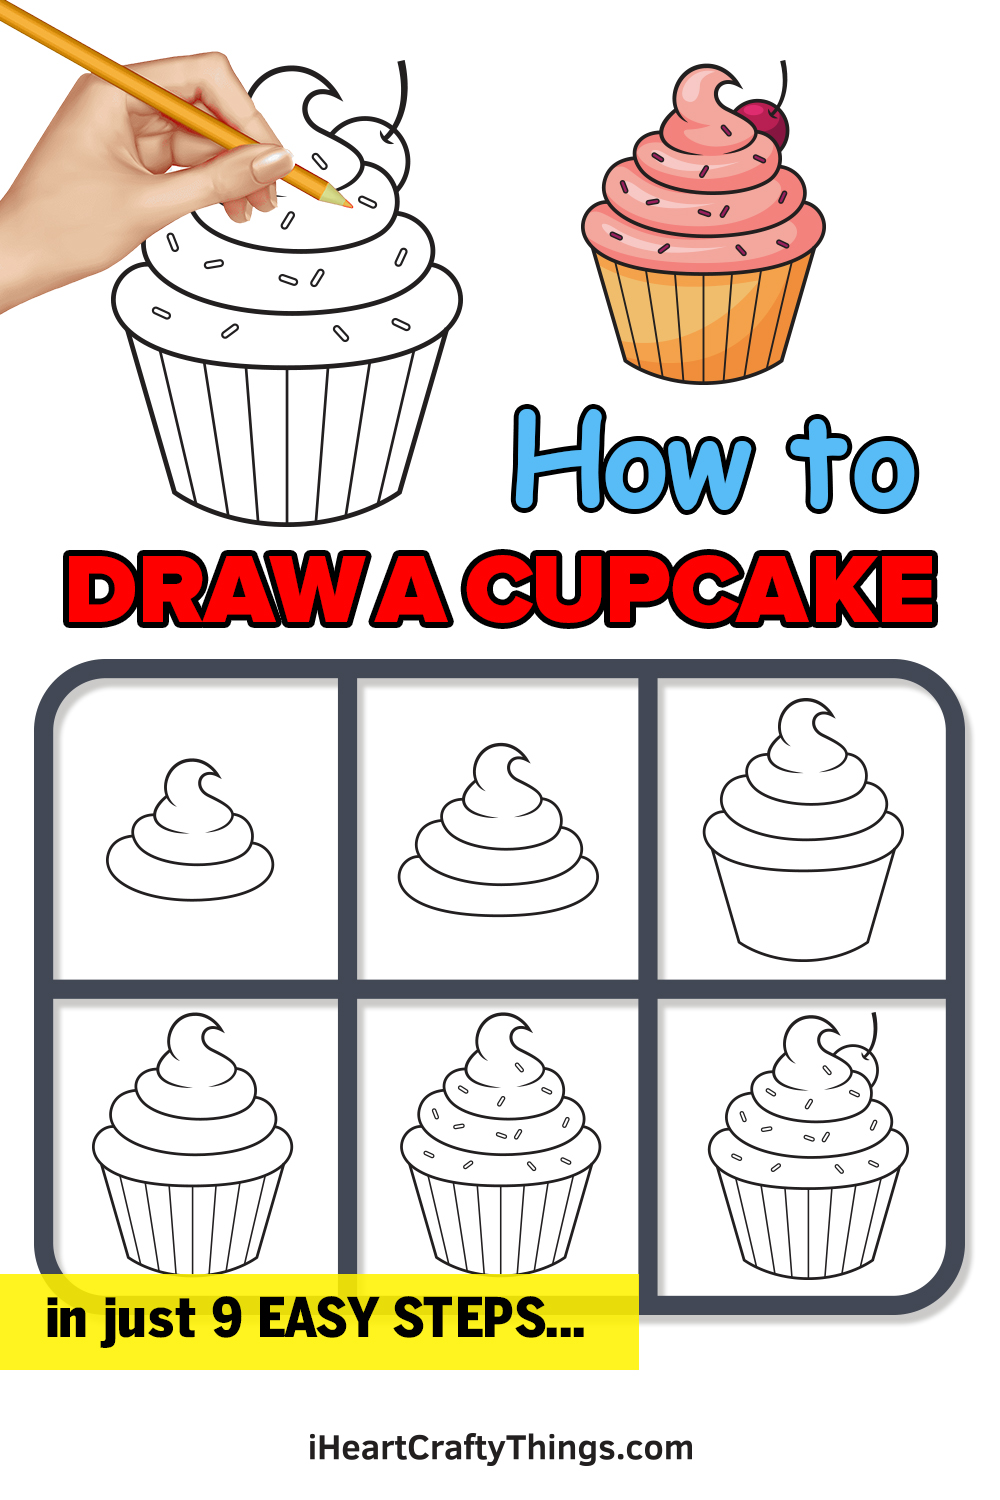 How to Draw a Cupcake in 9 Easy Steps